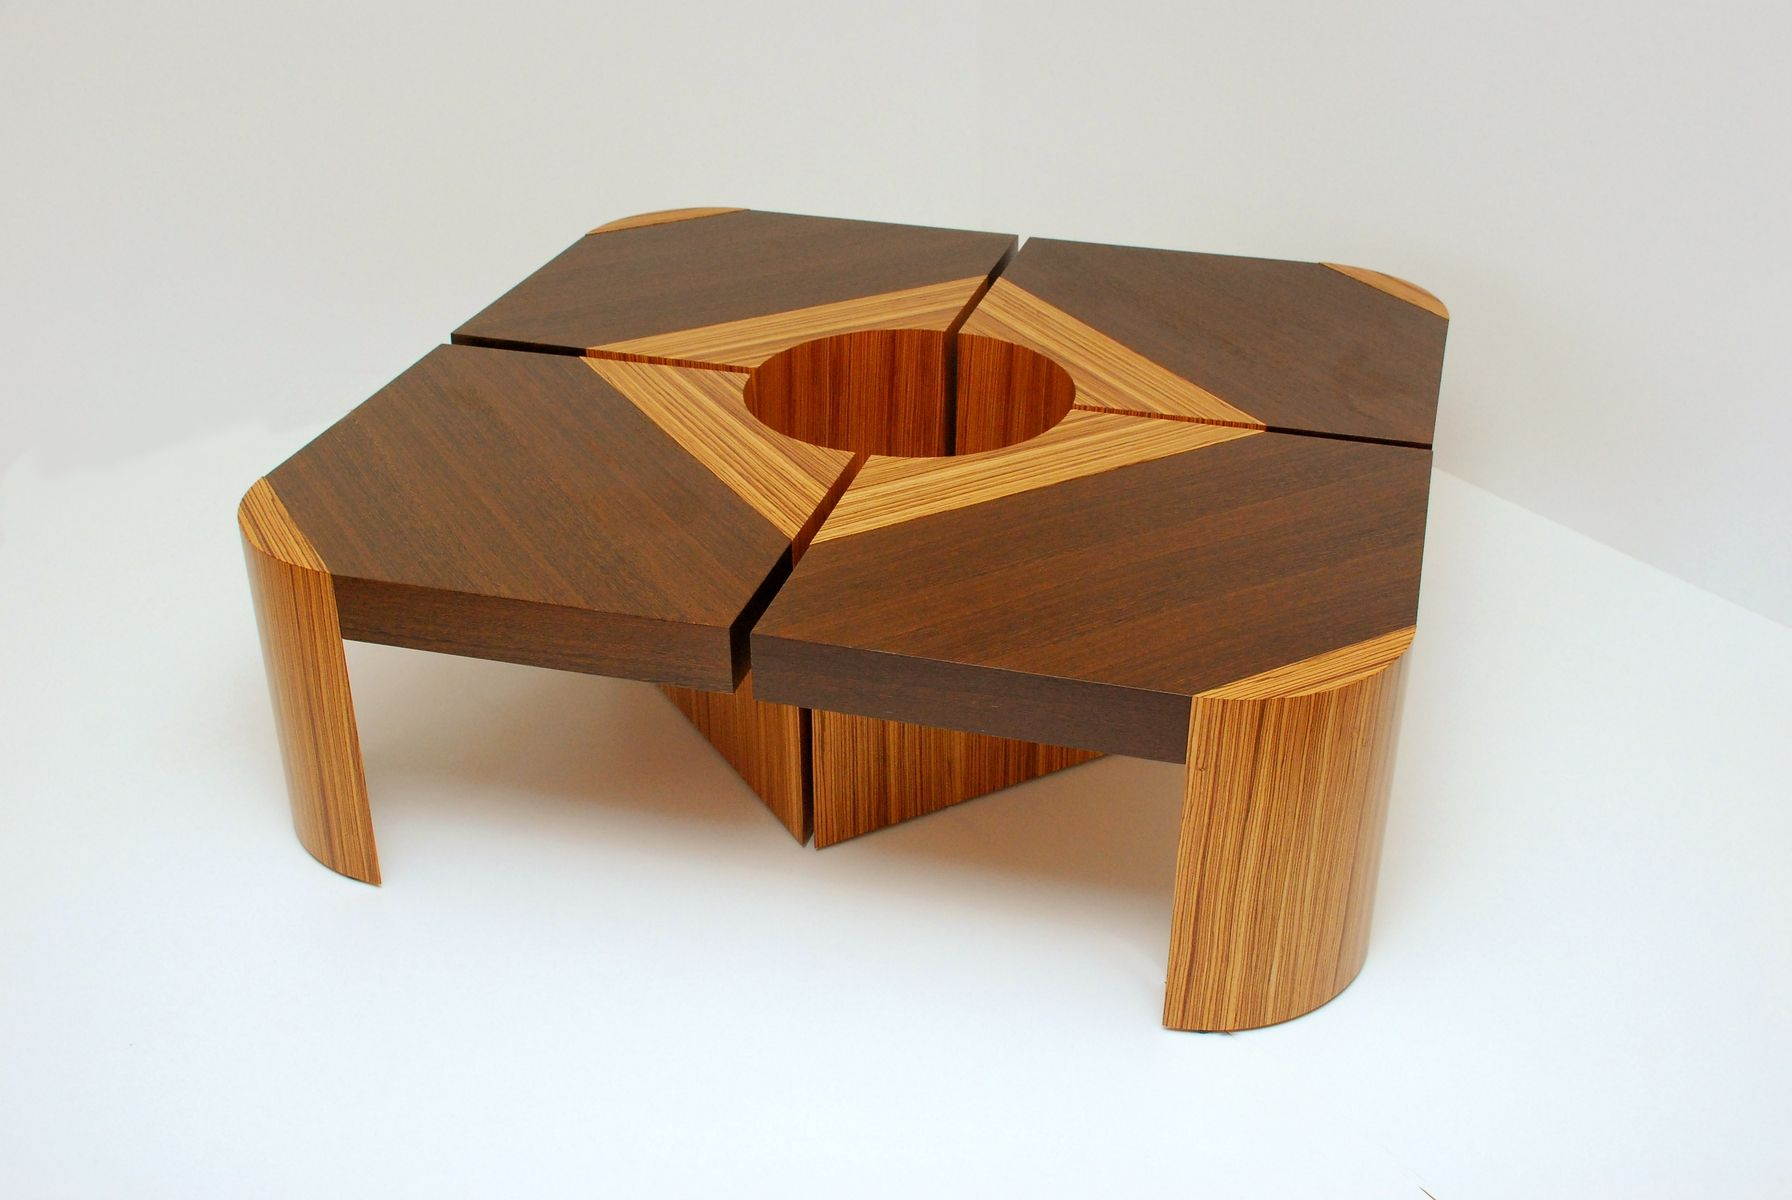 Handmade bloom table set wenge zebra wood by furniture by design - Design on wooden ...